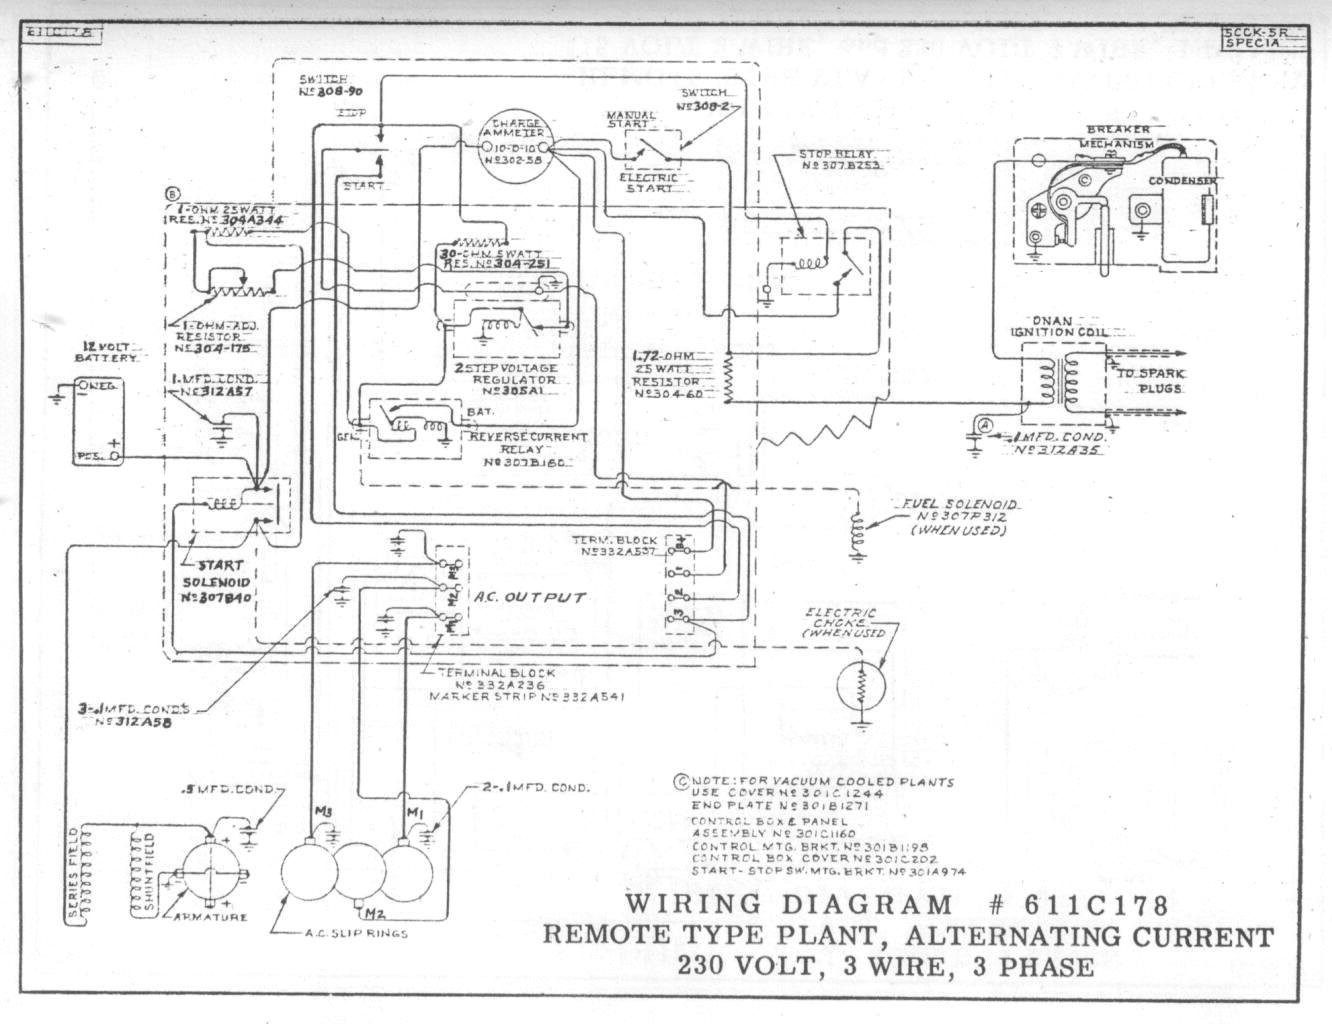 onan starter diagram explained wiring diagrams rh dmdelectro co Old Onan Generators Wiring Diagrams Wiring-Diagram Onan Genset